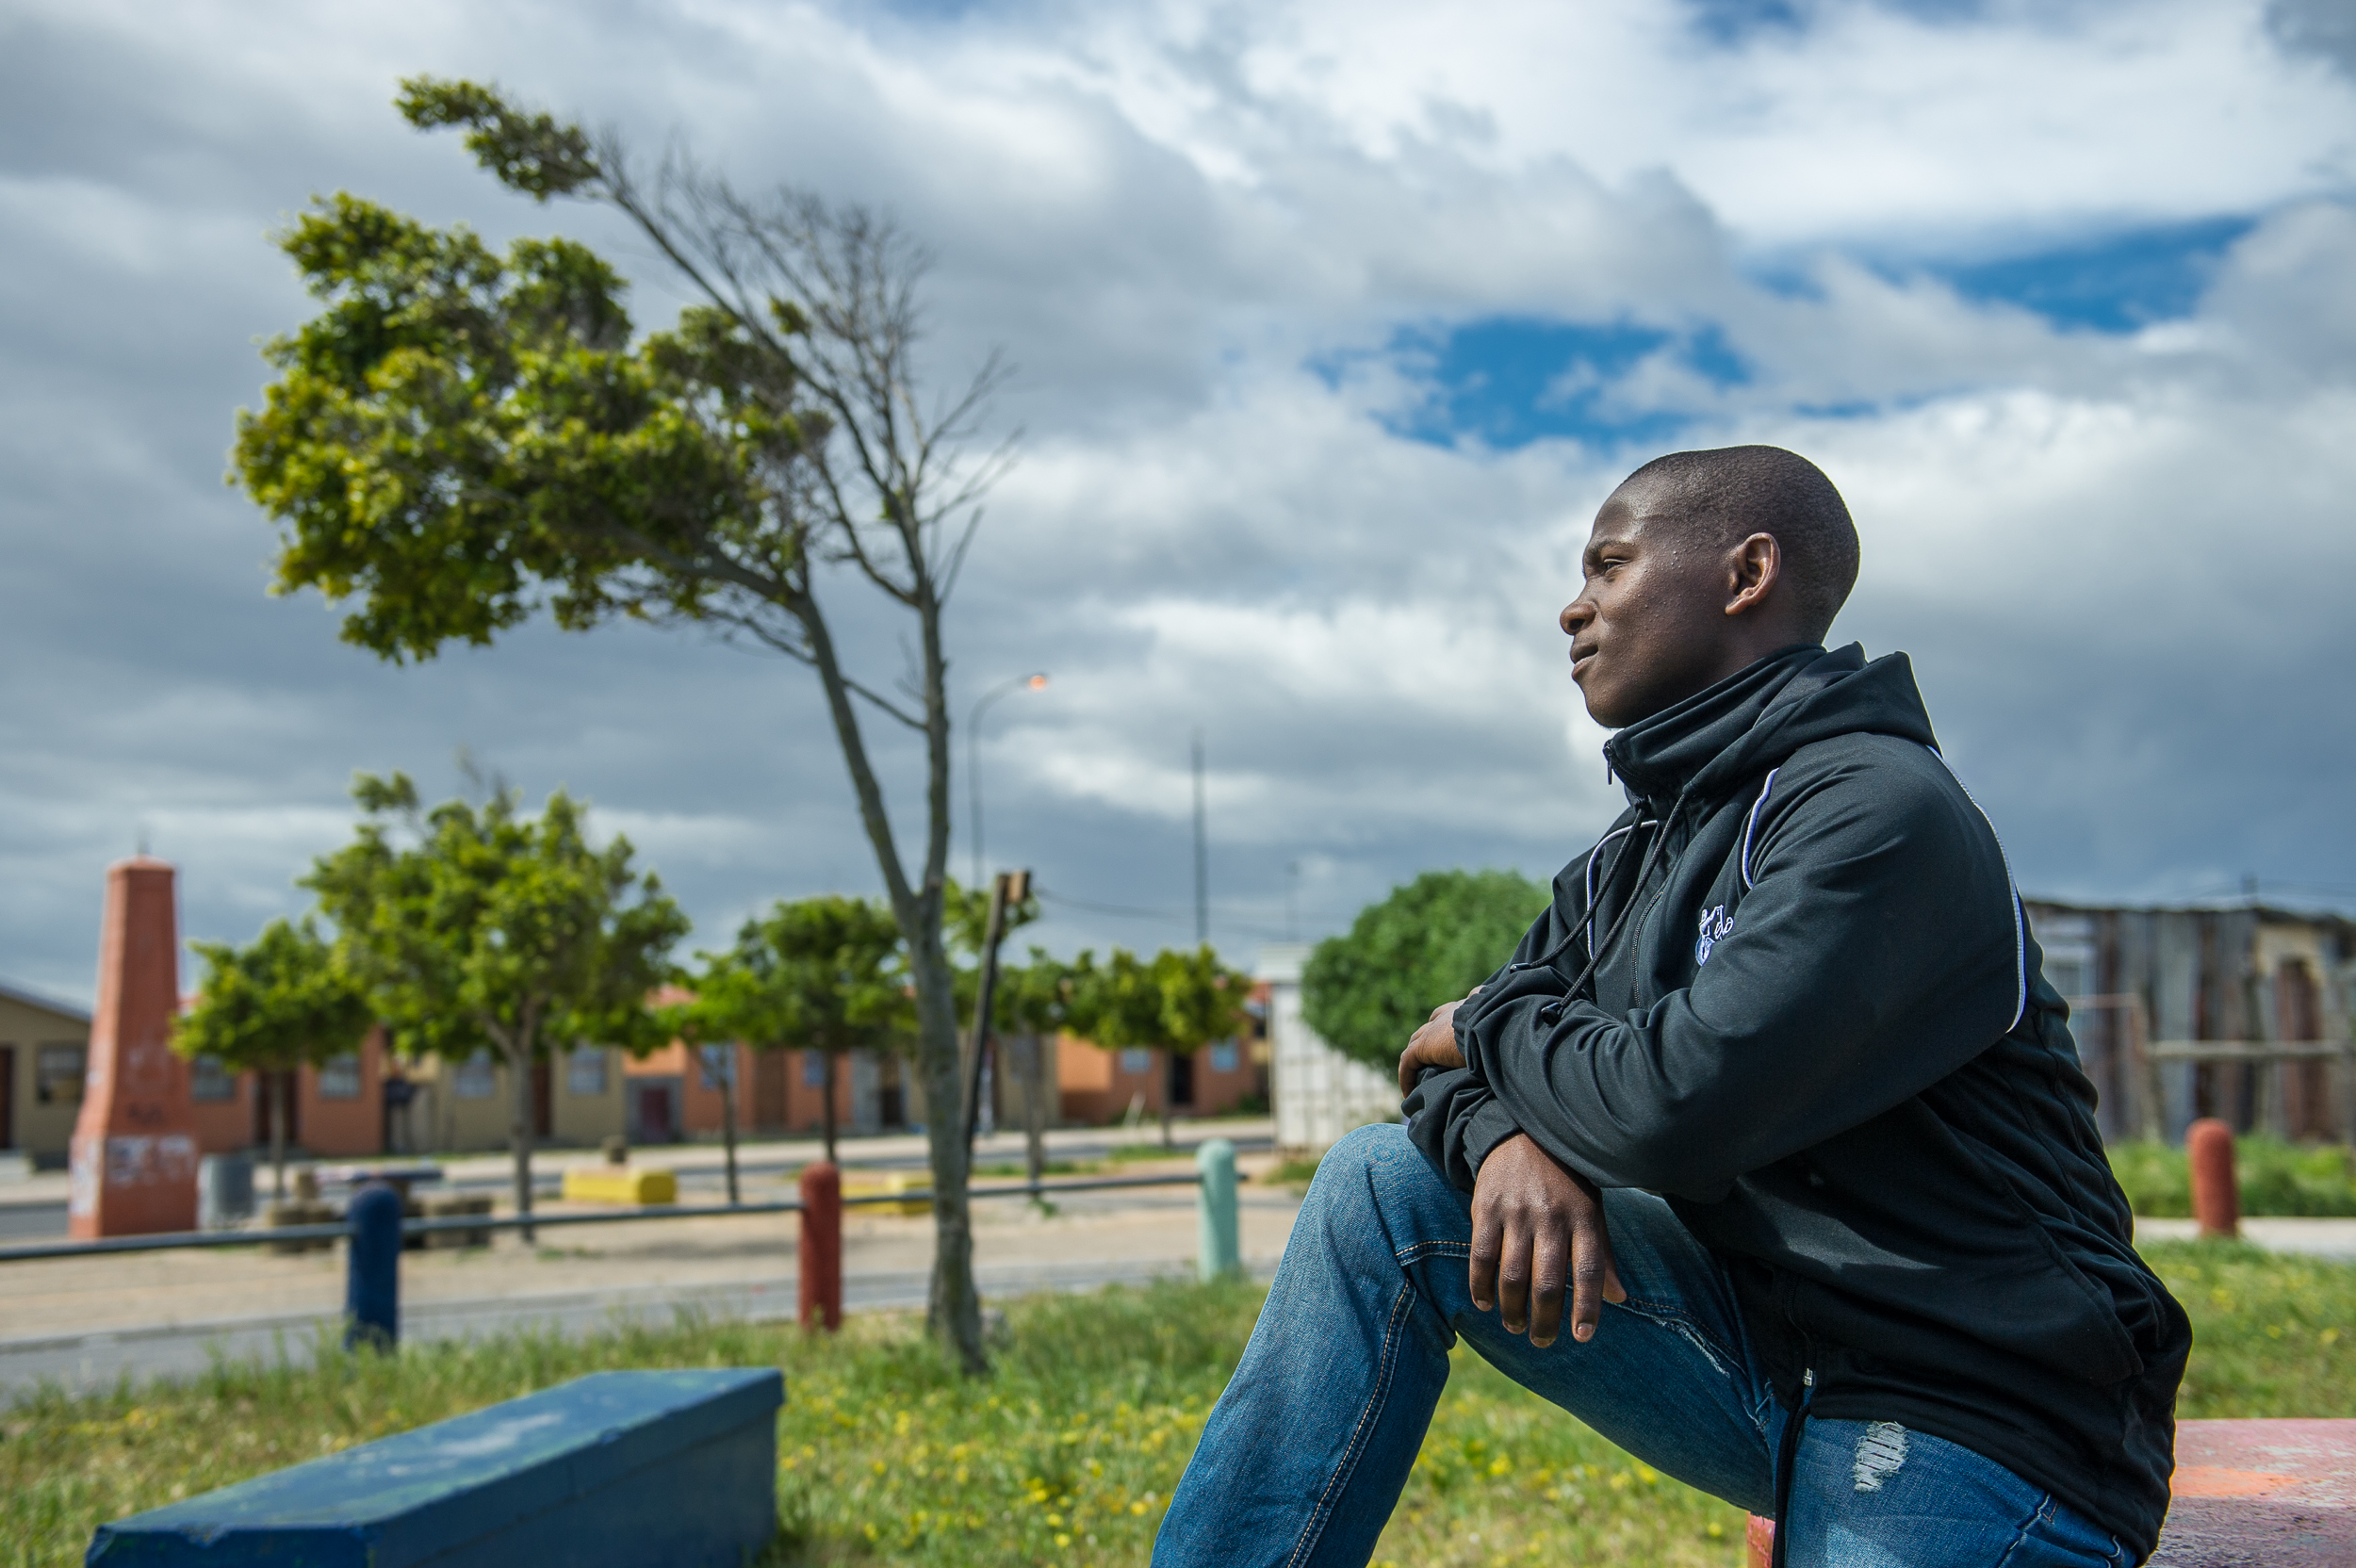 Samkile waits outside of his grandmother's house. They often struggle to make ends meet.